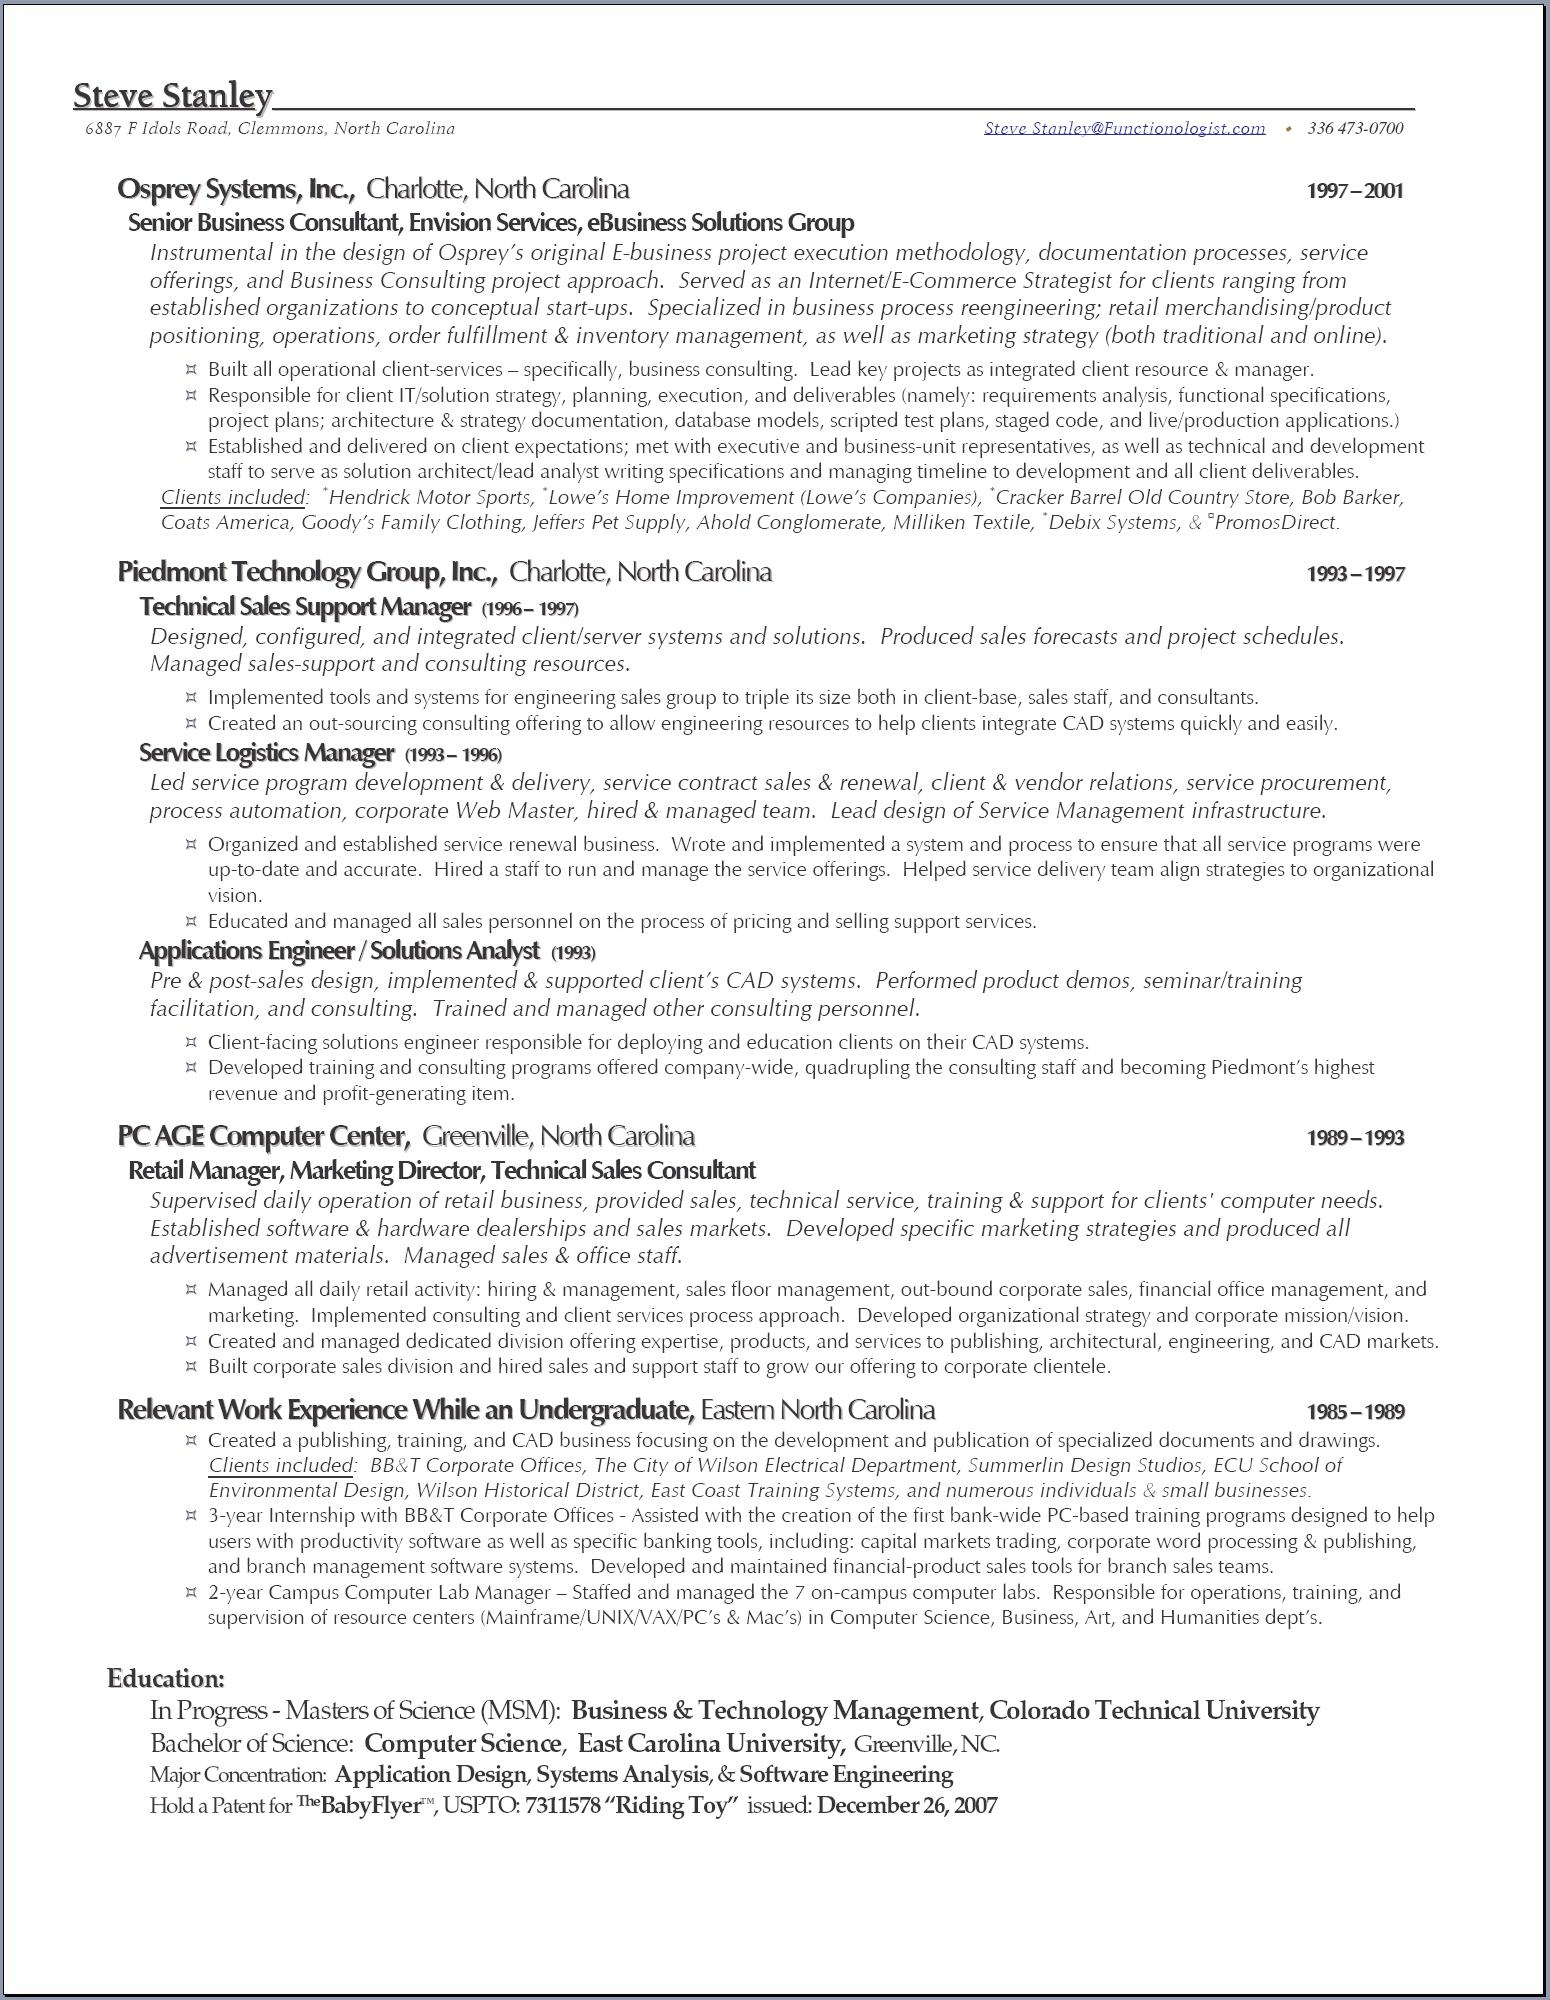 resume 1 Or 2 Page Resume 2 page resumes free resume example and writing com s the functionologist steve 2